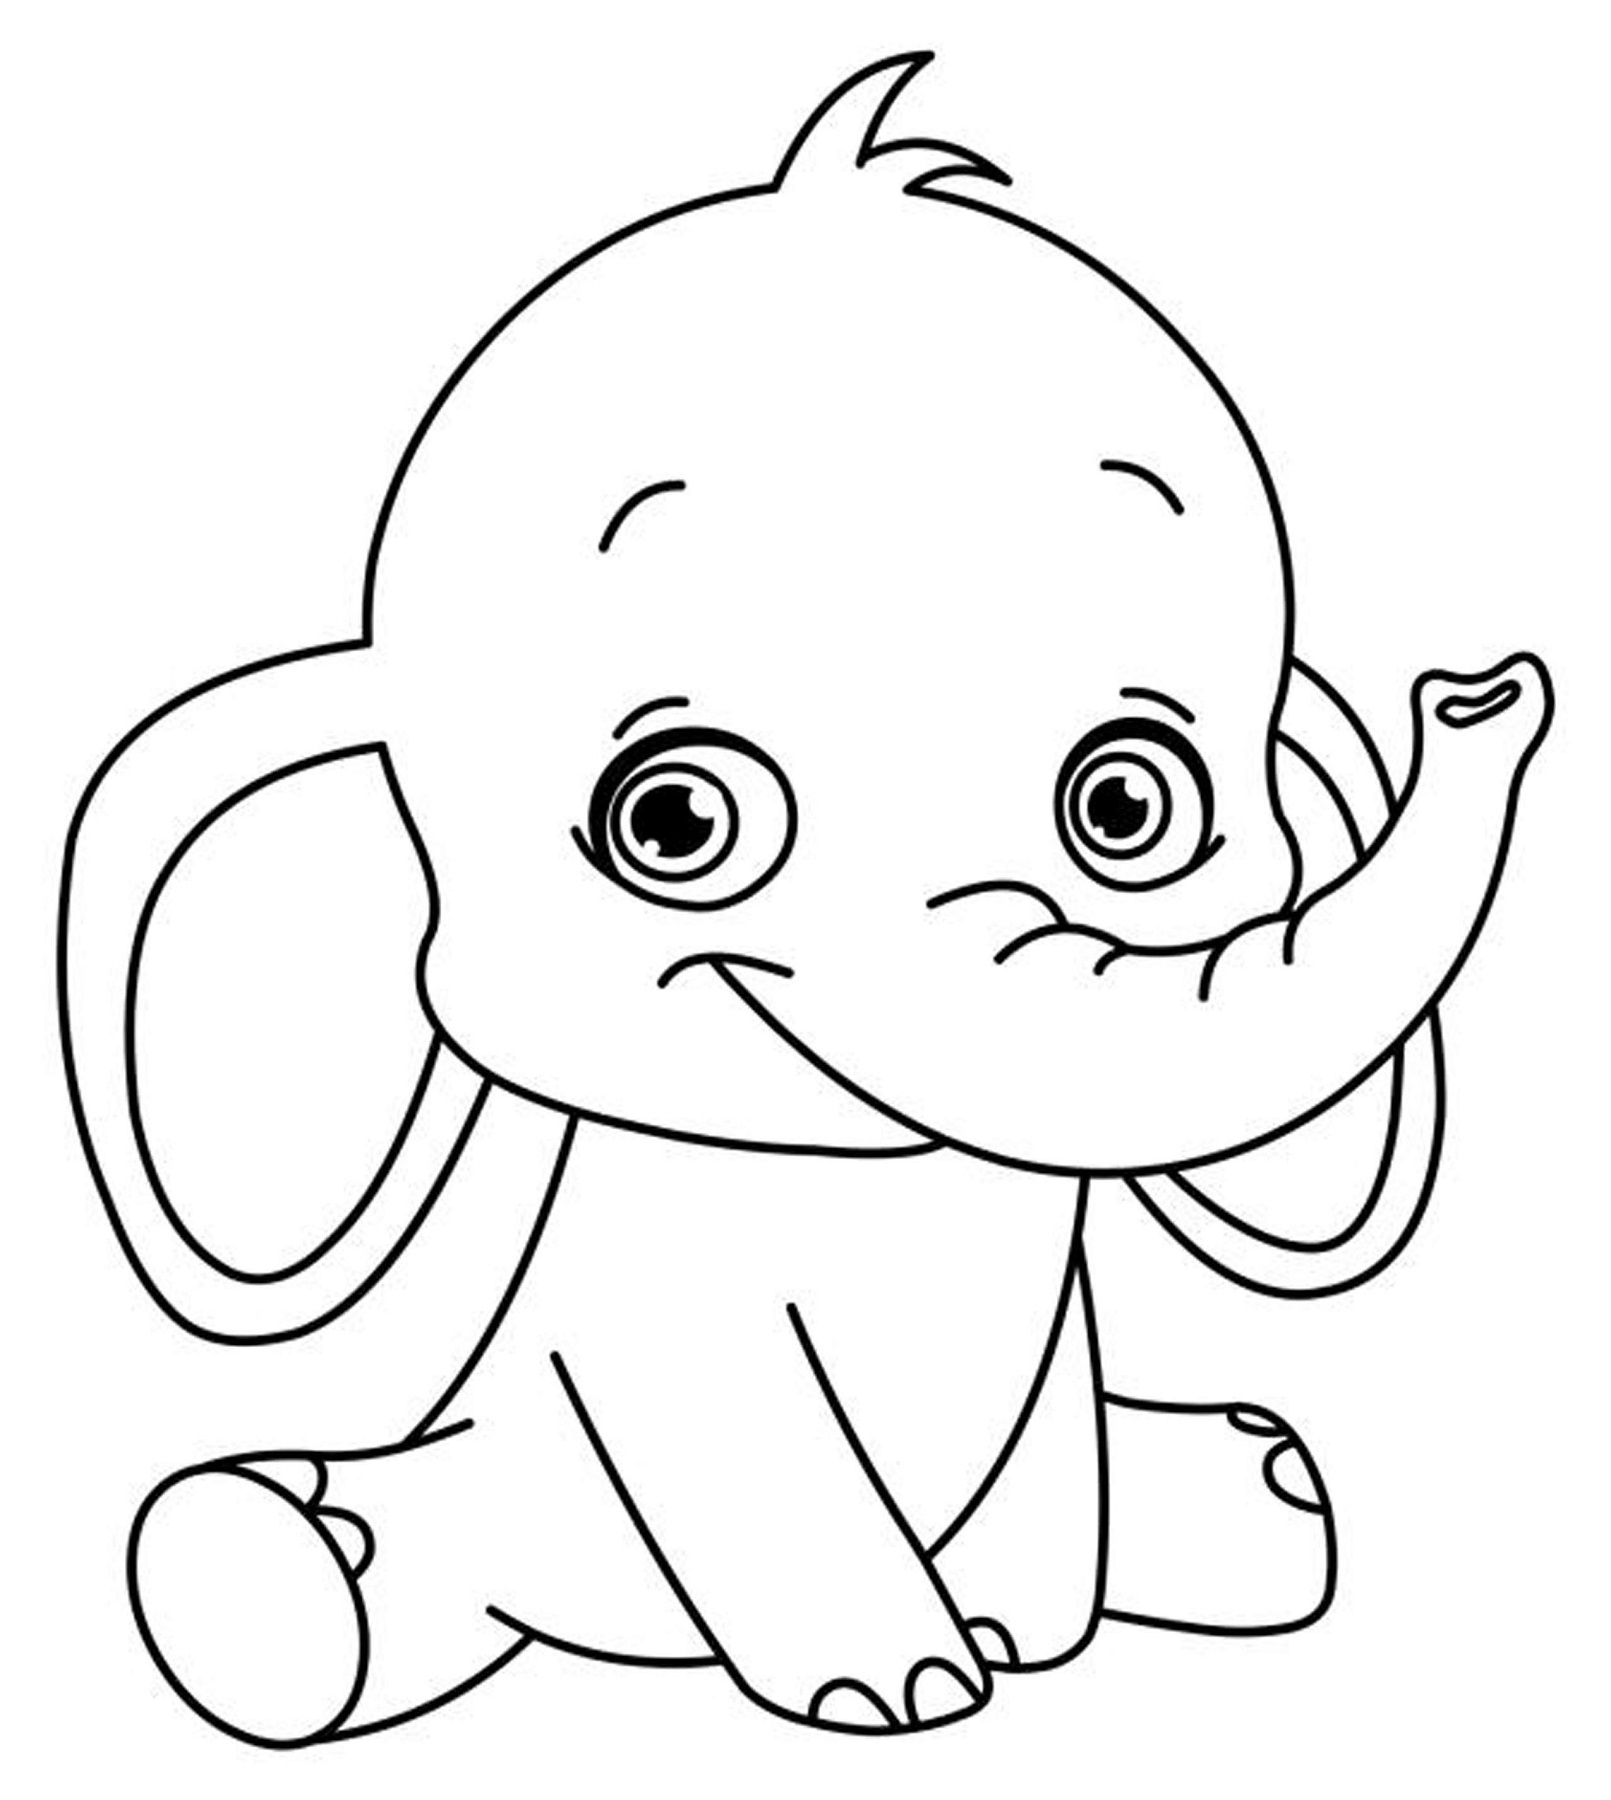 childrens colouring pages to print elephant - Childrens Colouring Pages